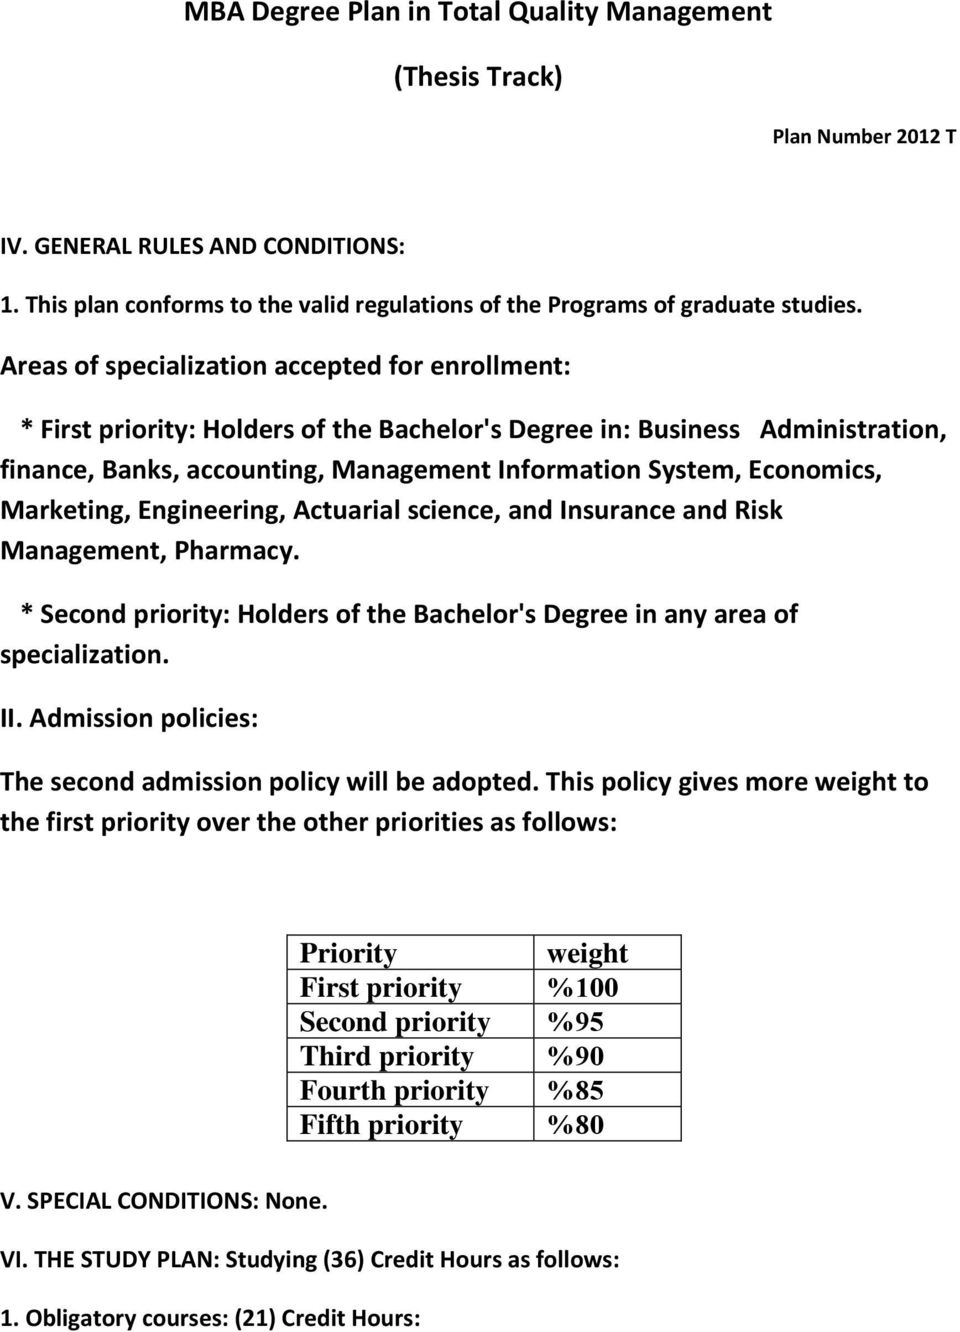 Marketing, Engineering, Actuarial science, and Insurance and Risk Management, Pharmacy. * Second priority: Holders of the Bachelor's Degree in any area of specialization. II.